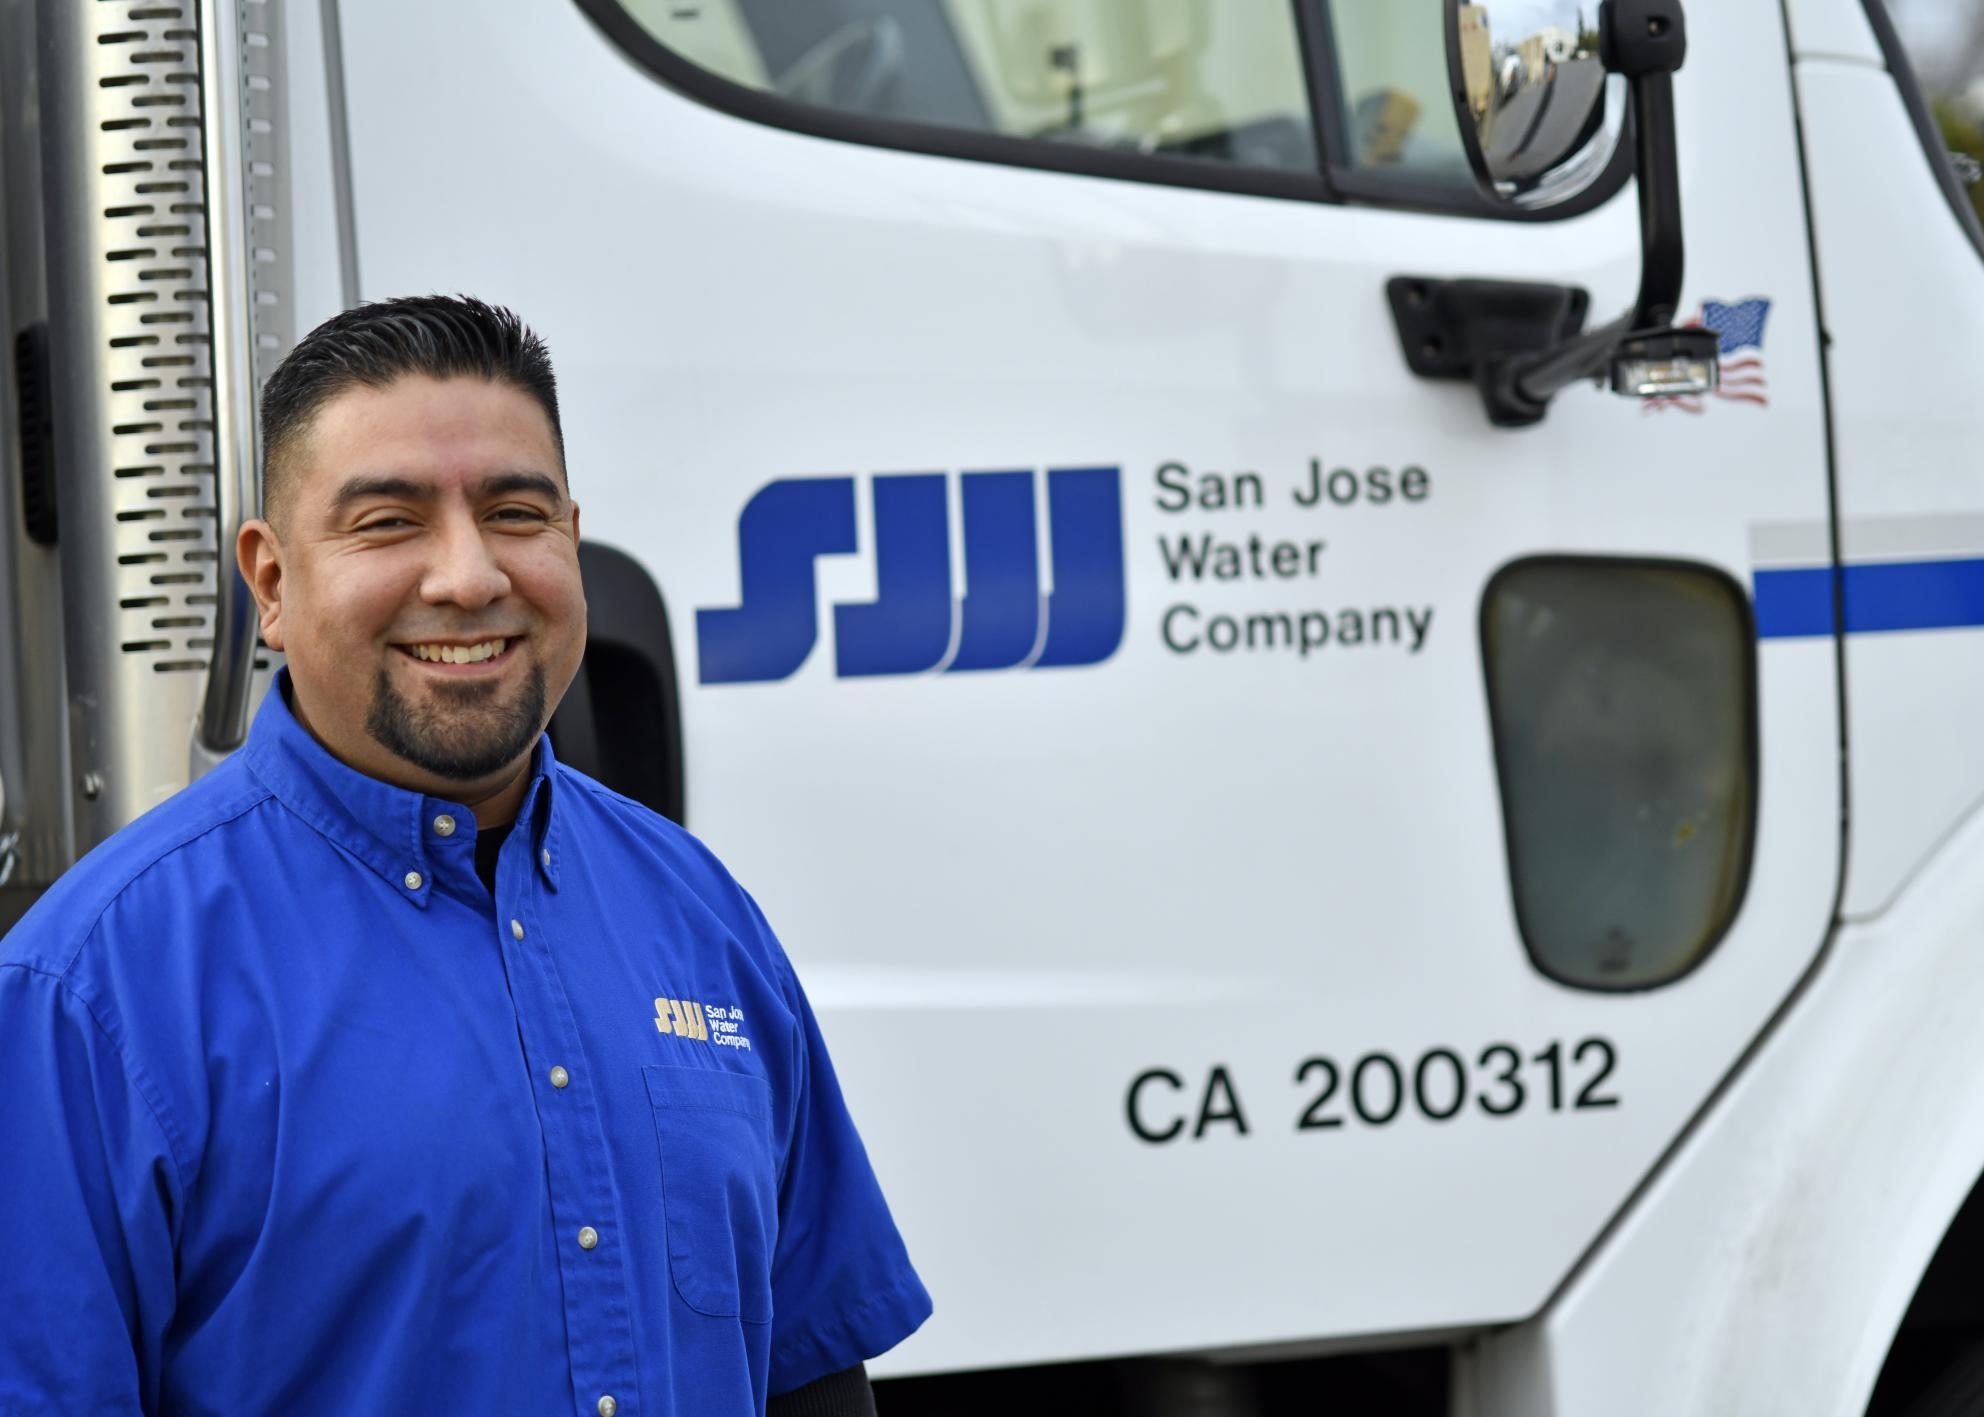 SJW employee in front of SJW truck